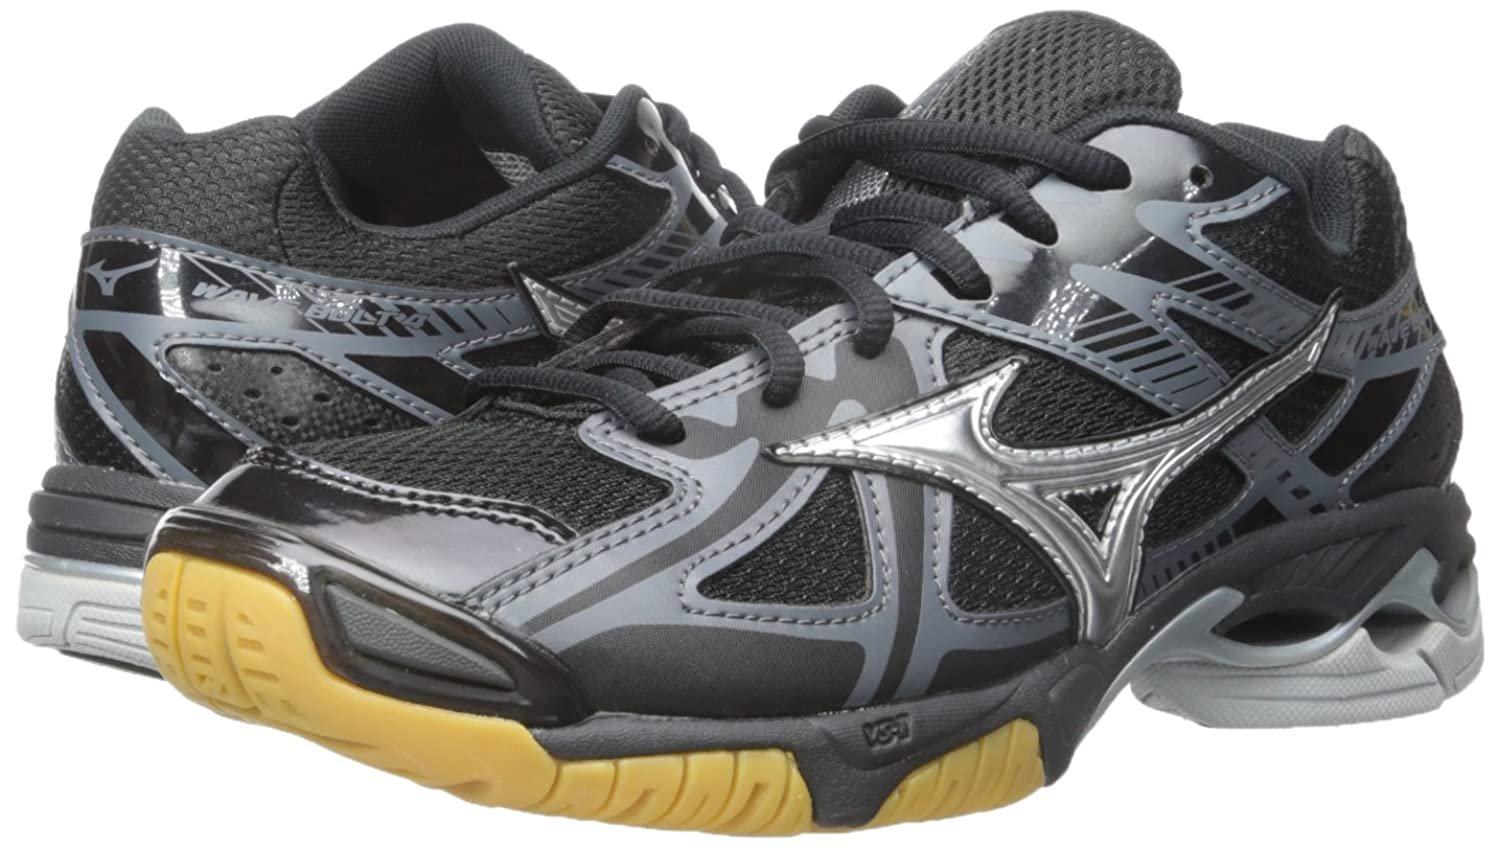 Mizuno Volleyball Sko Kvinners Amazon TFvG57